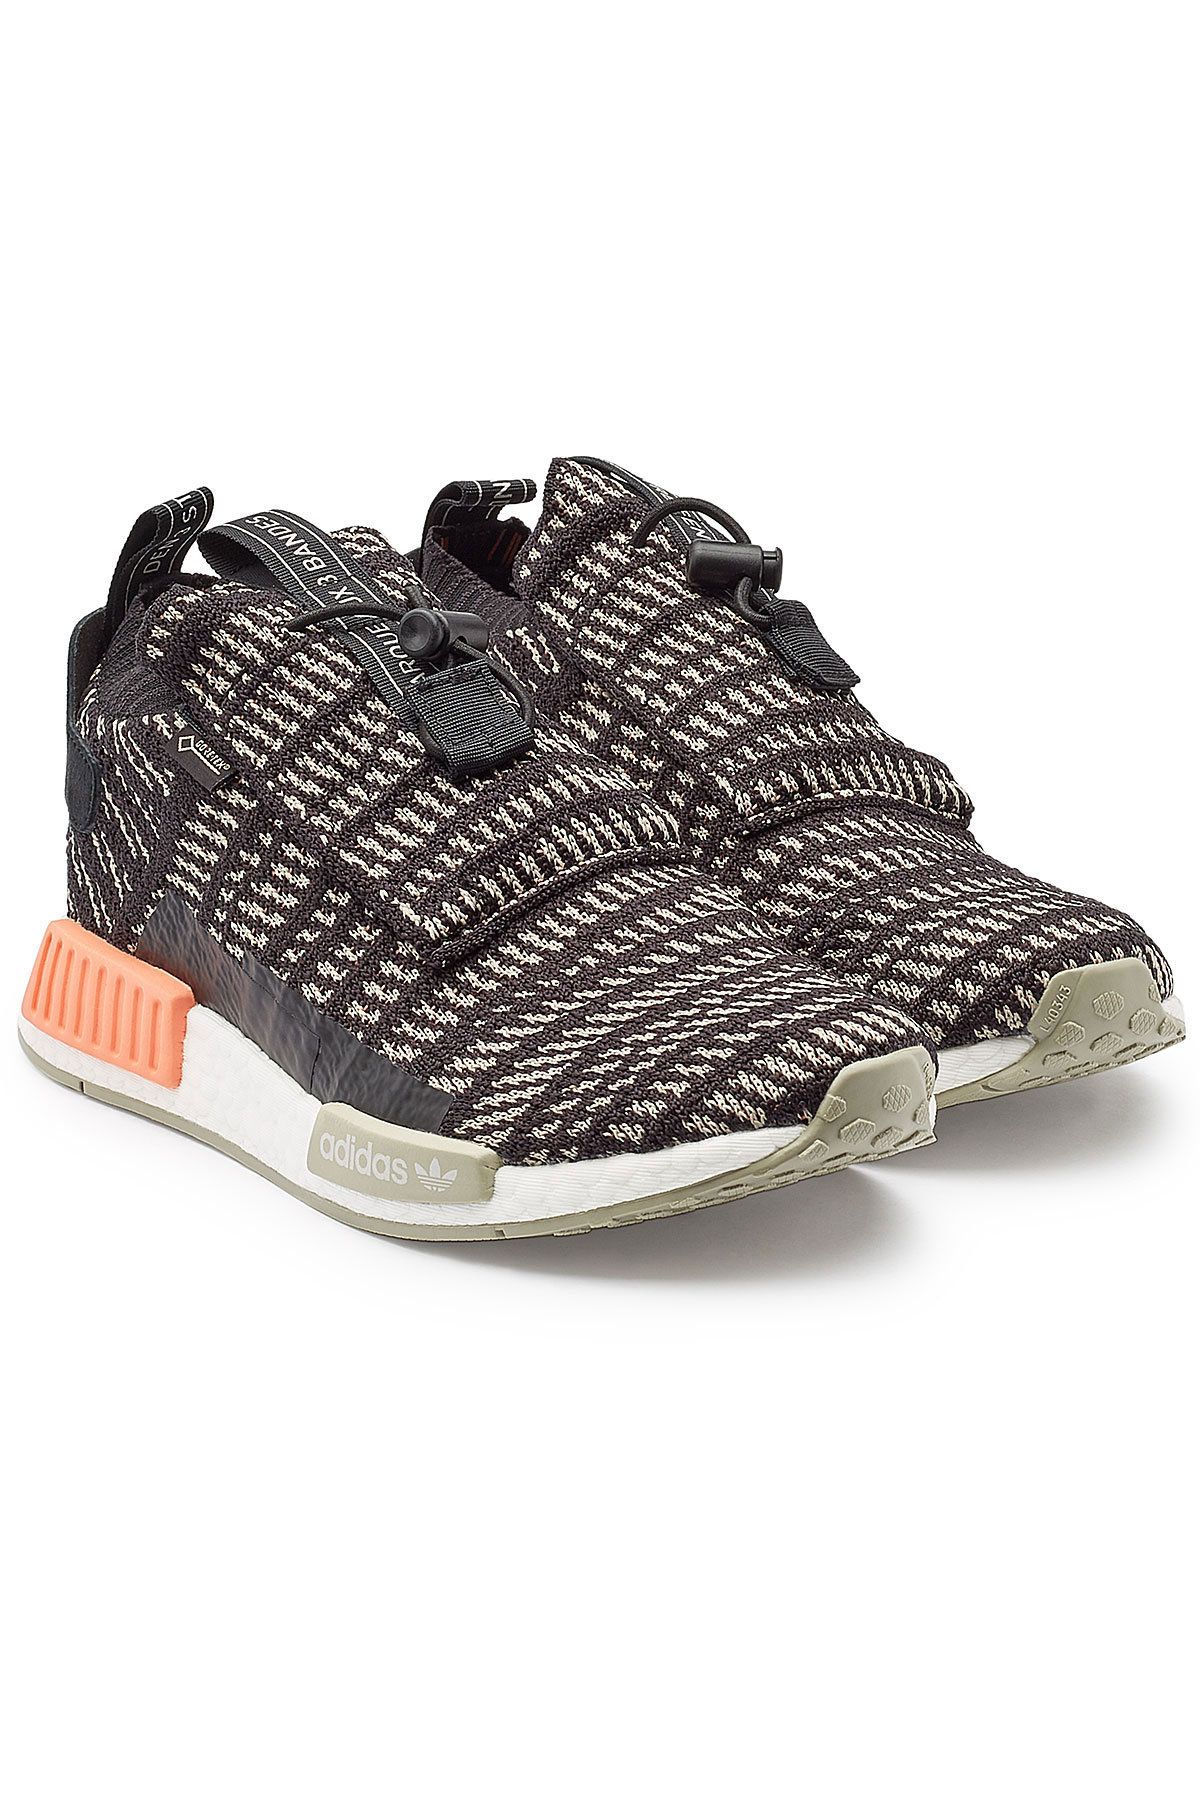 2bccbc0a062b5 ADIDAS ORIGINALS NMD TS1 PK GORE-TEX PRIMEKNIT SNEAKERS.  adidasoriginals   shoes